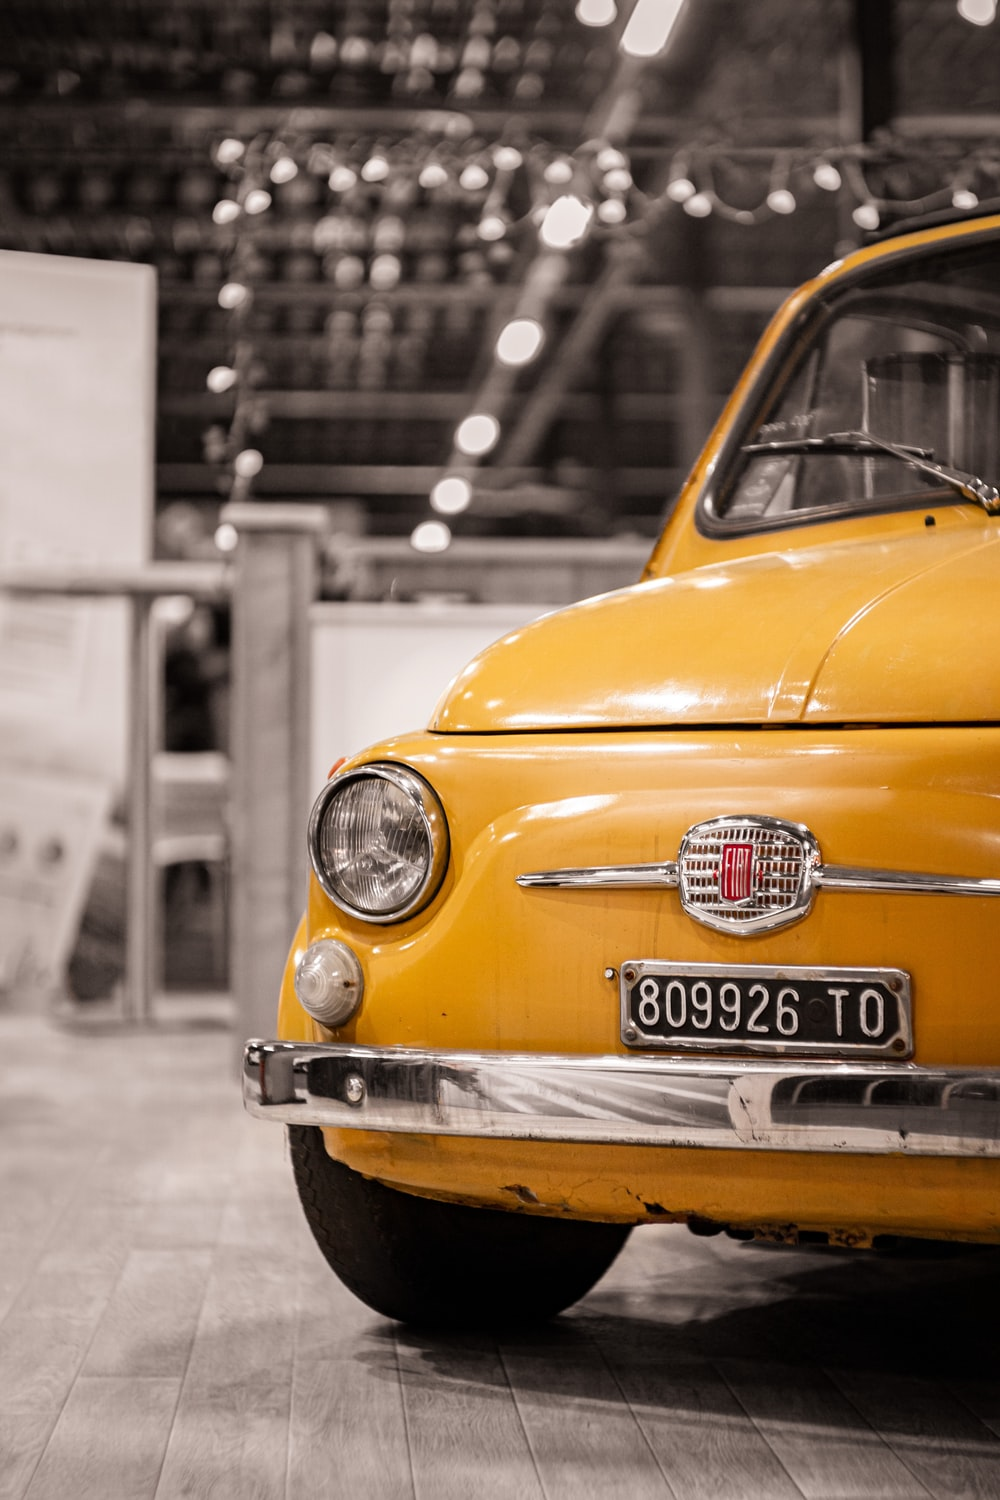 yellow car in grayscale photography